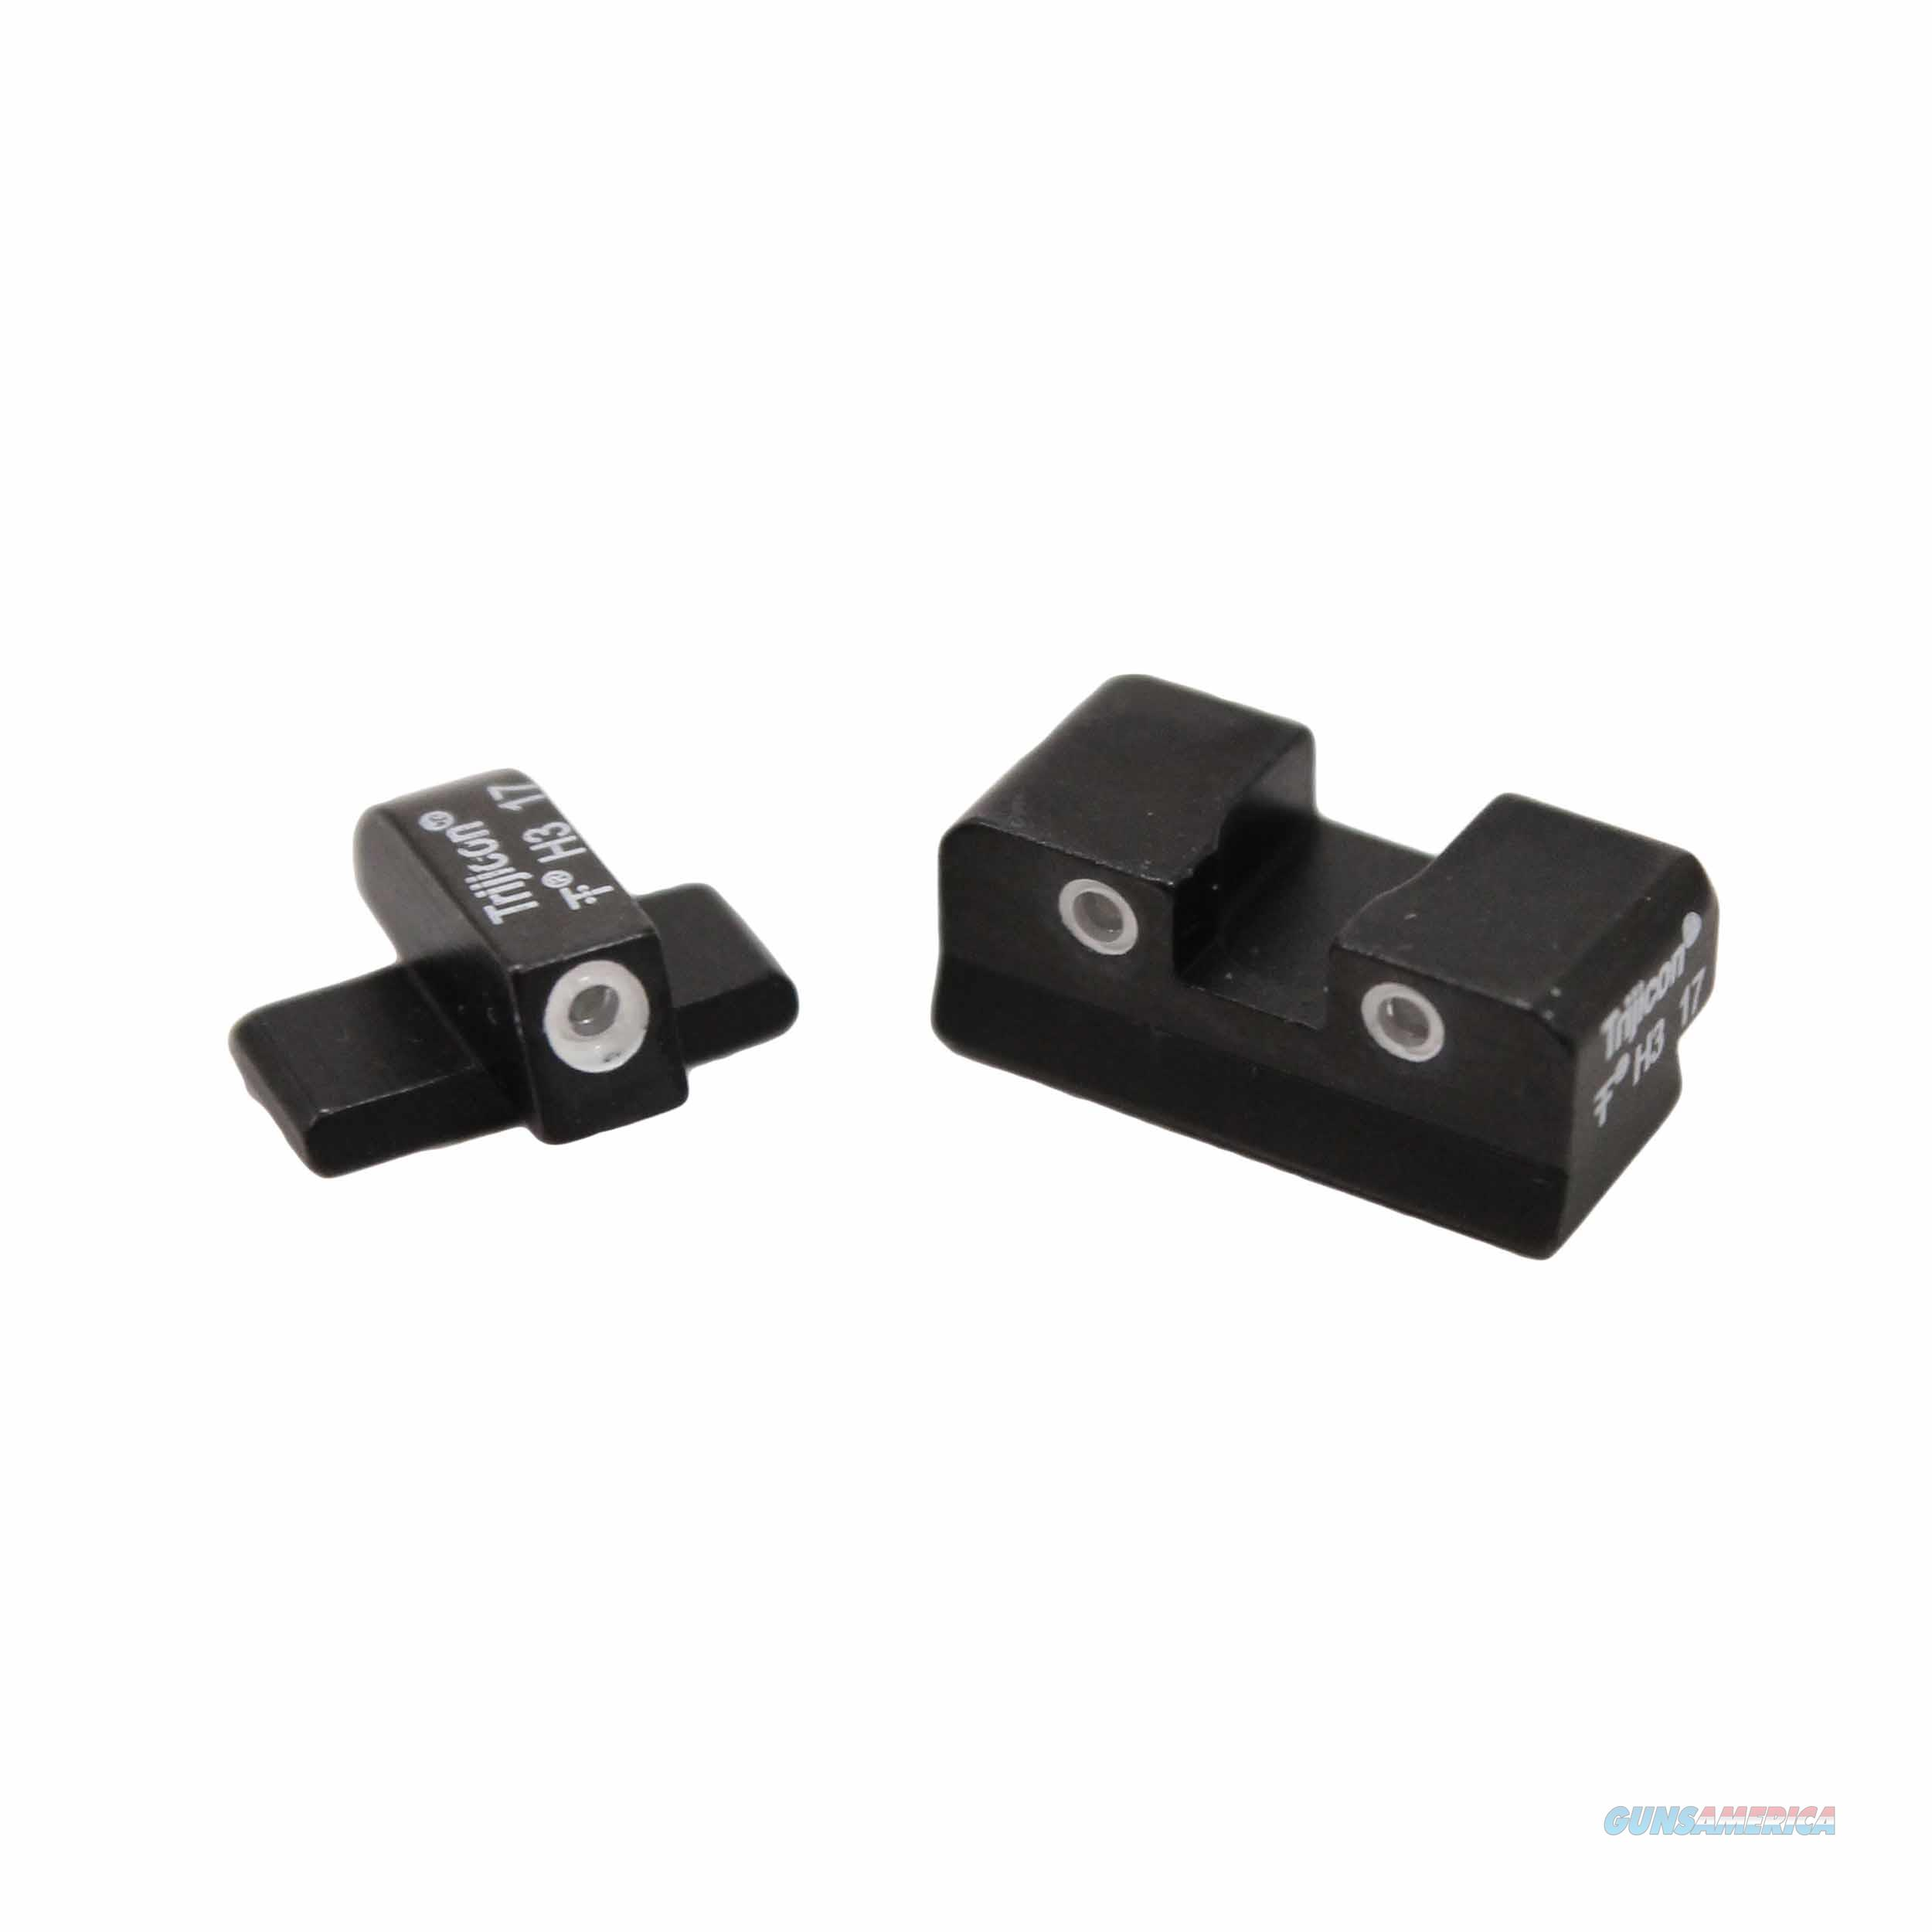 Trijicon Fnh Bright And Tough 3 Dot Night Sight Set FN04C600988  Non-Guns > Iron/Metal/Peep Sights